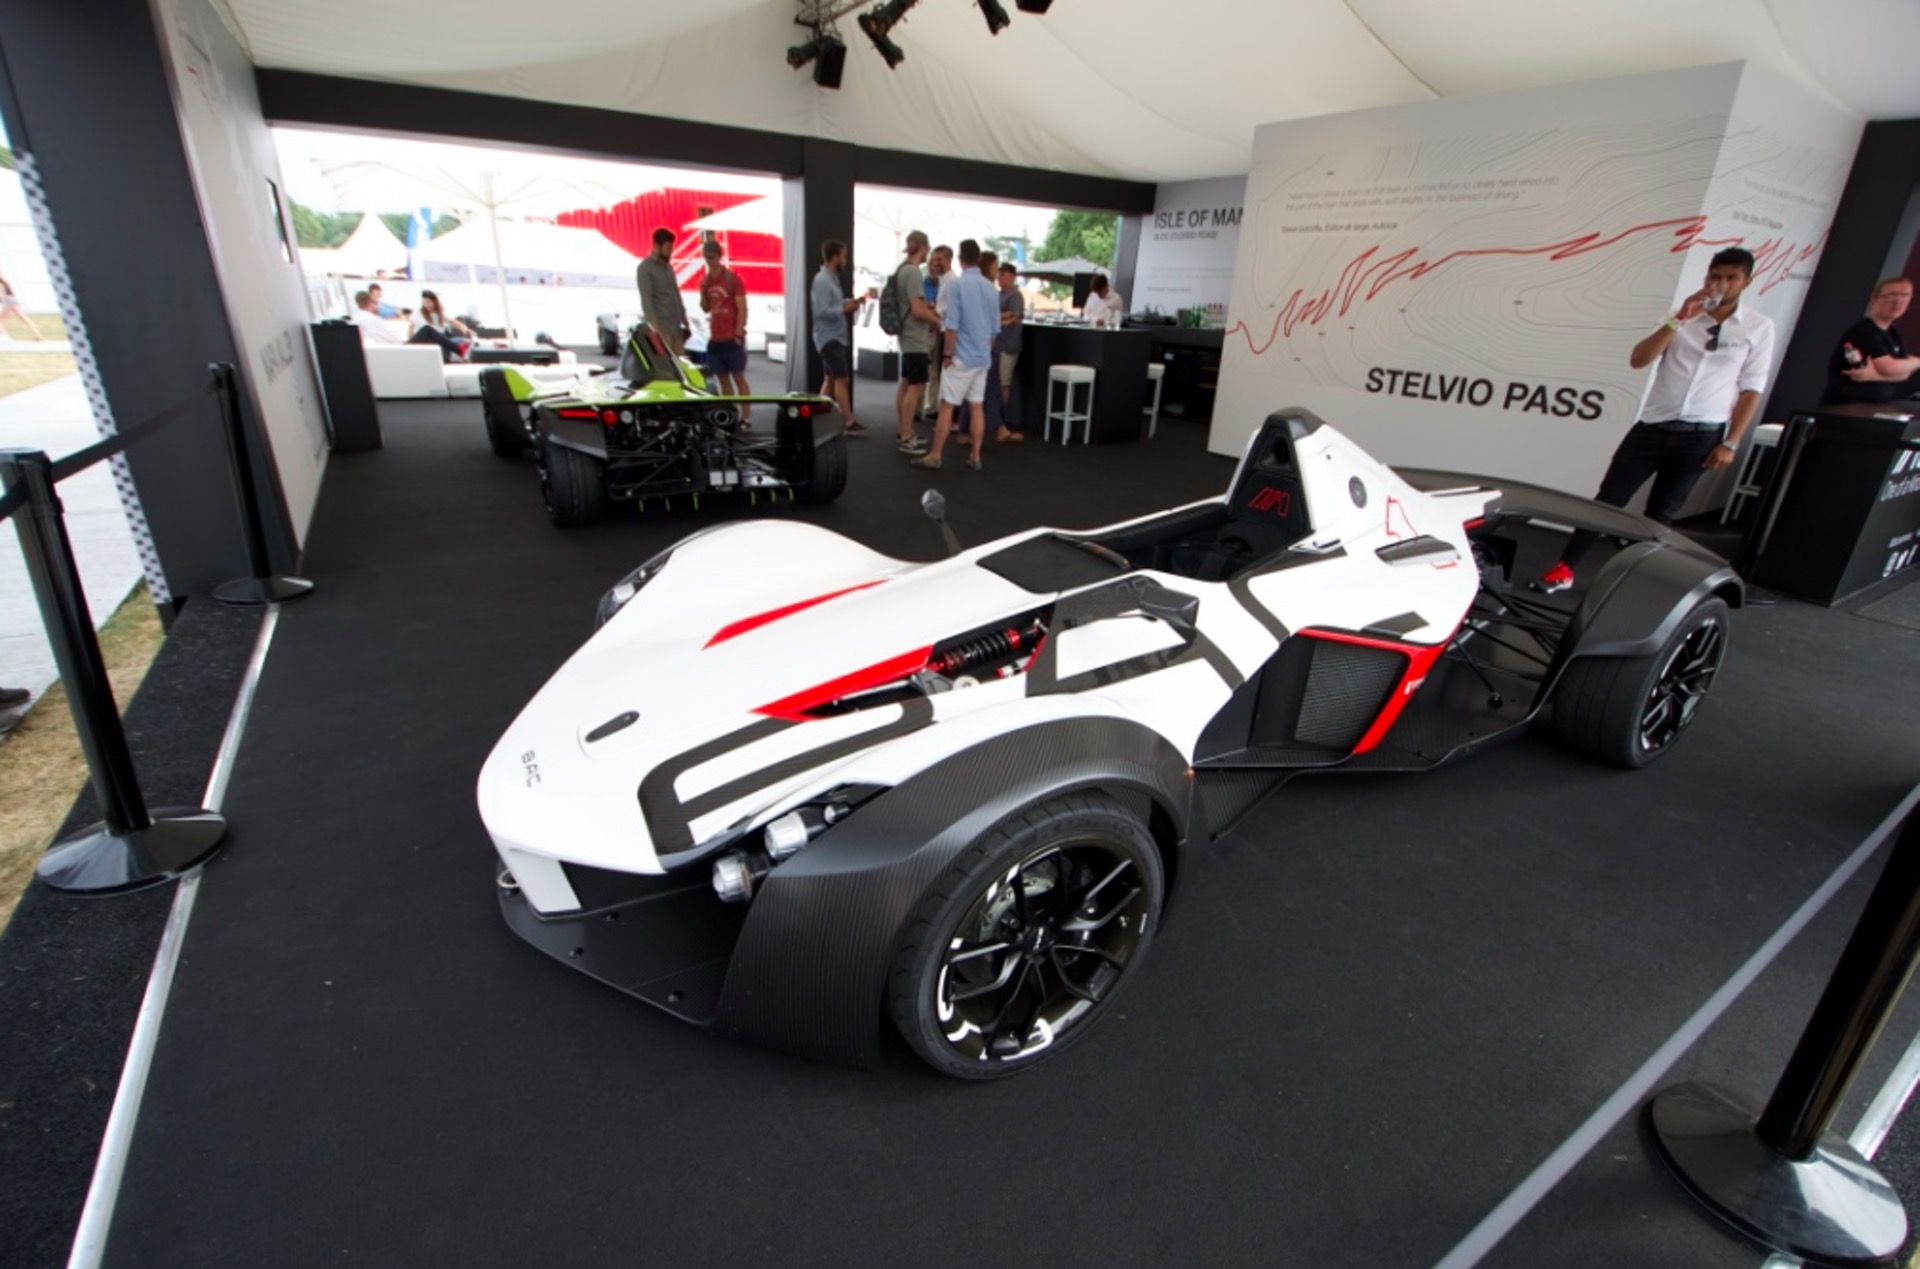 BAC_Mono_Goodwood_Hillclimb_Record_0010